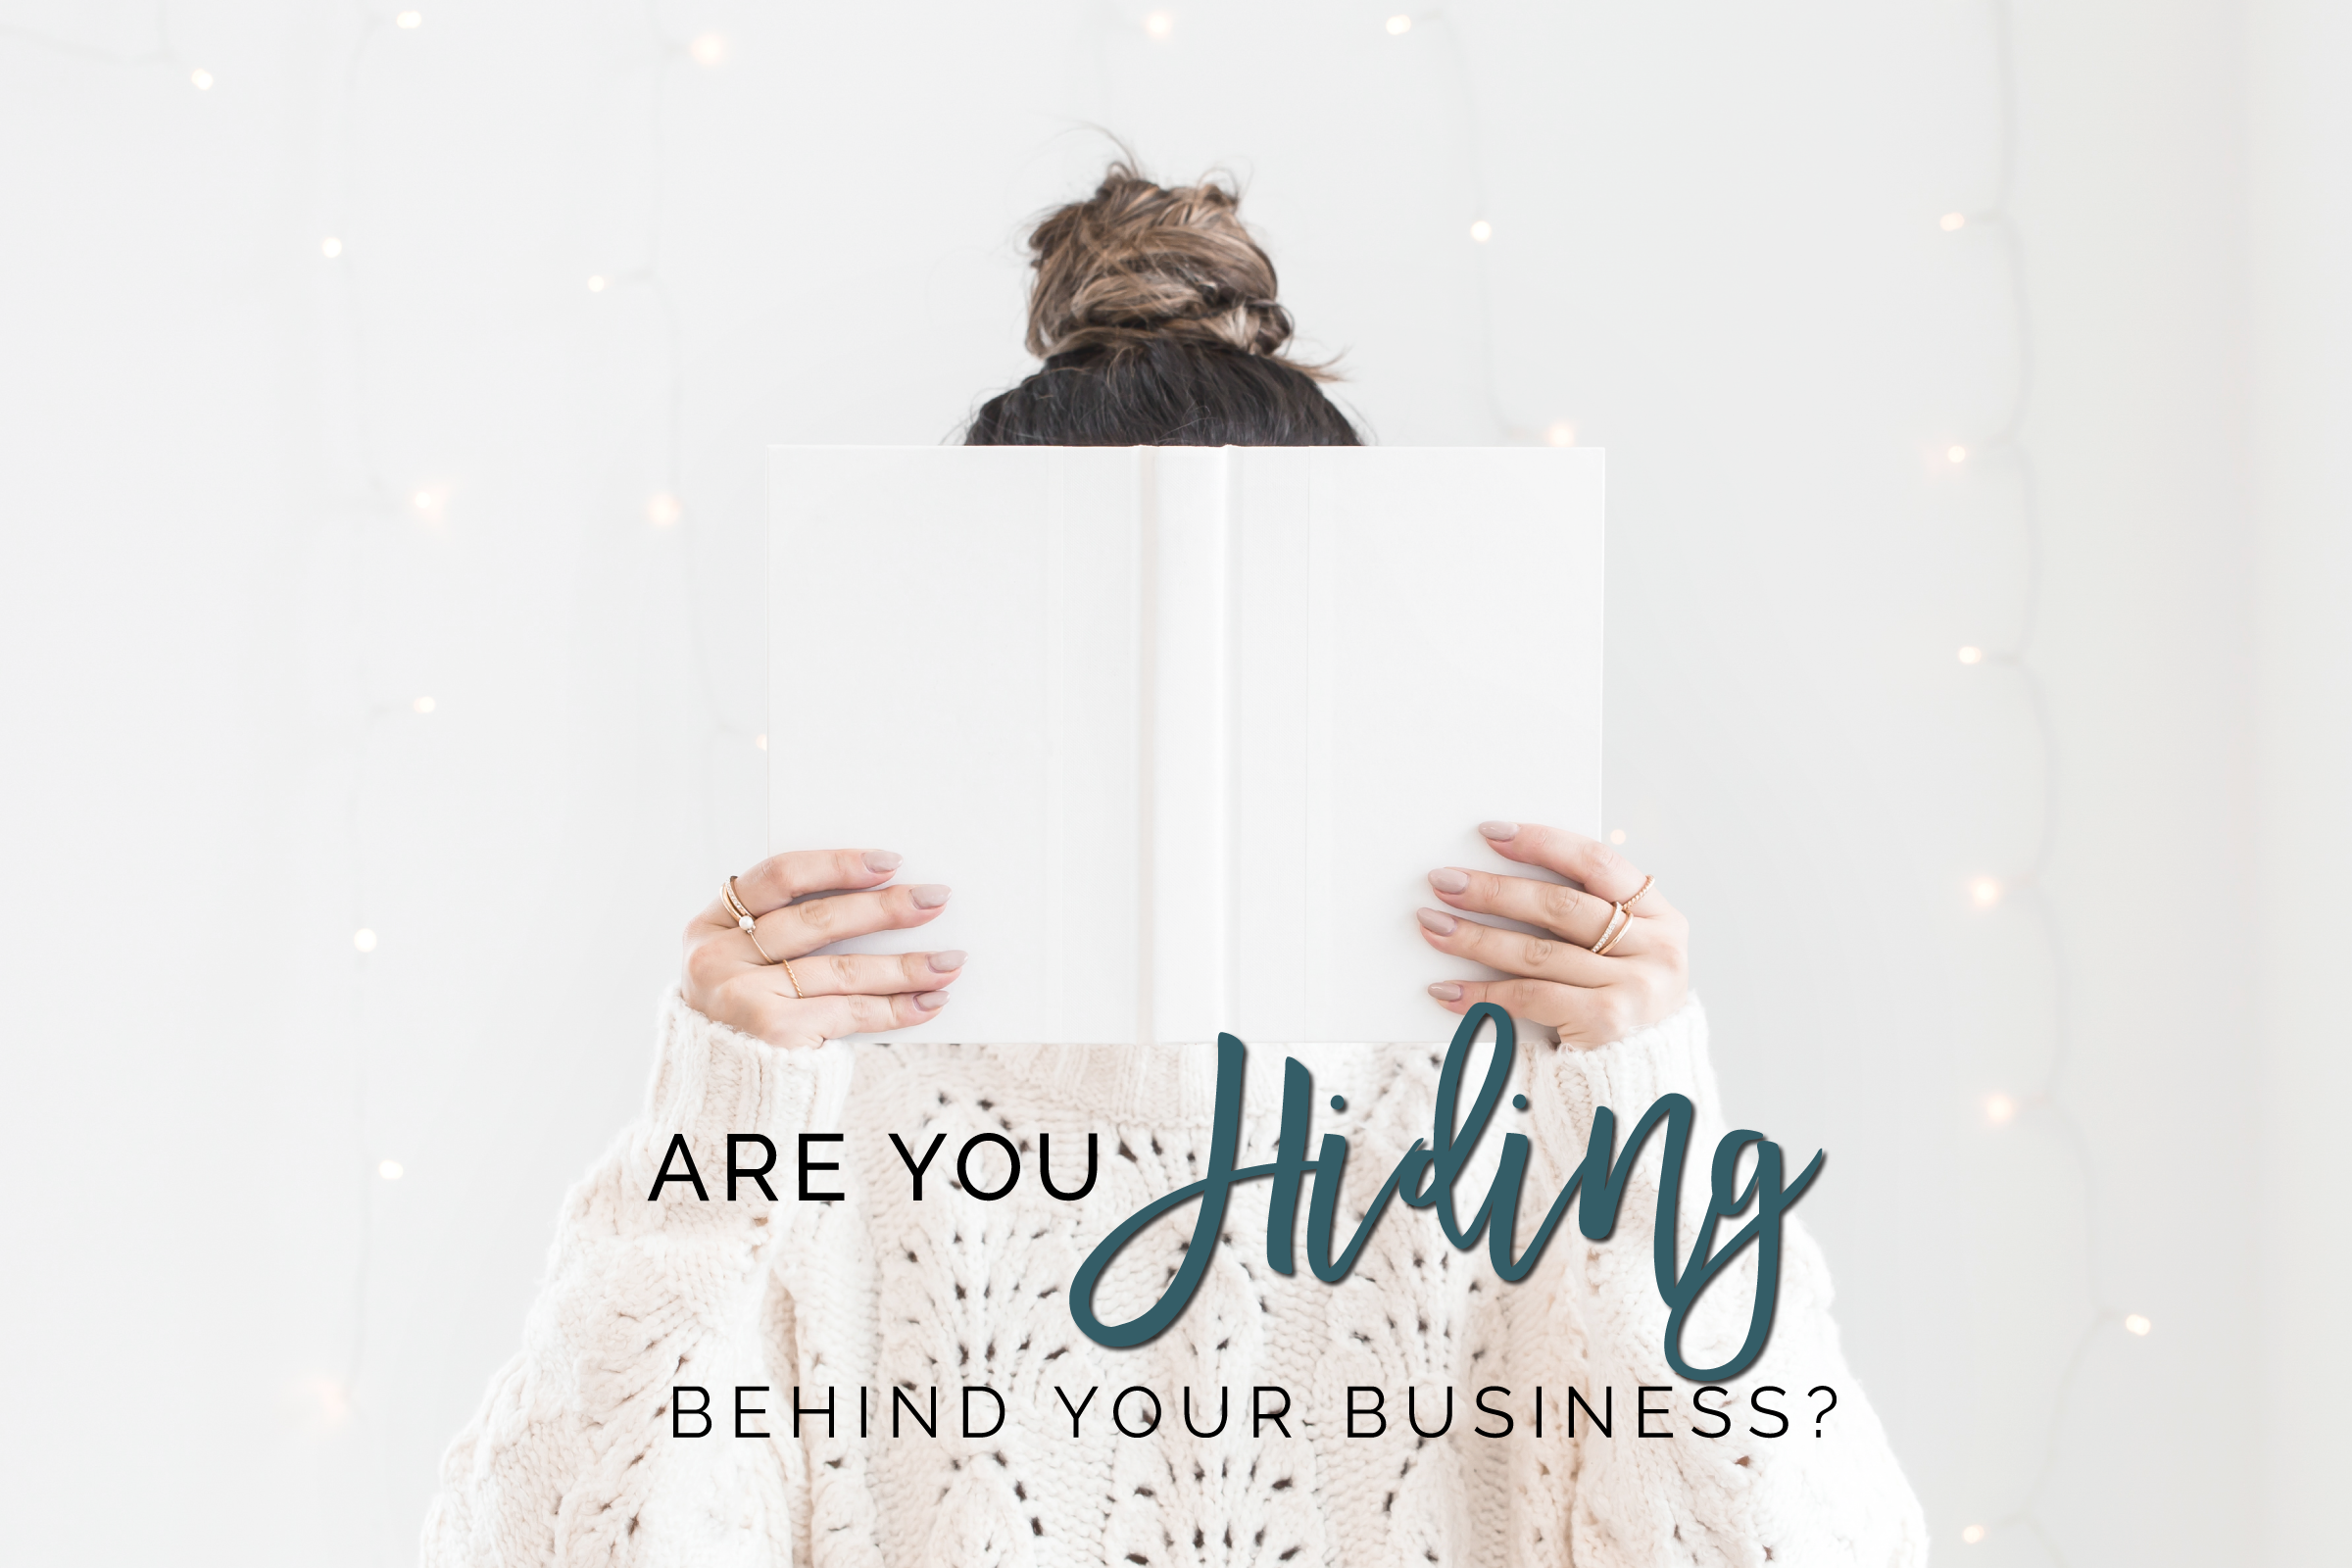 are you hiding behind your business?